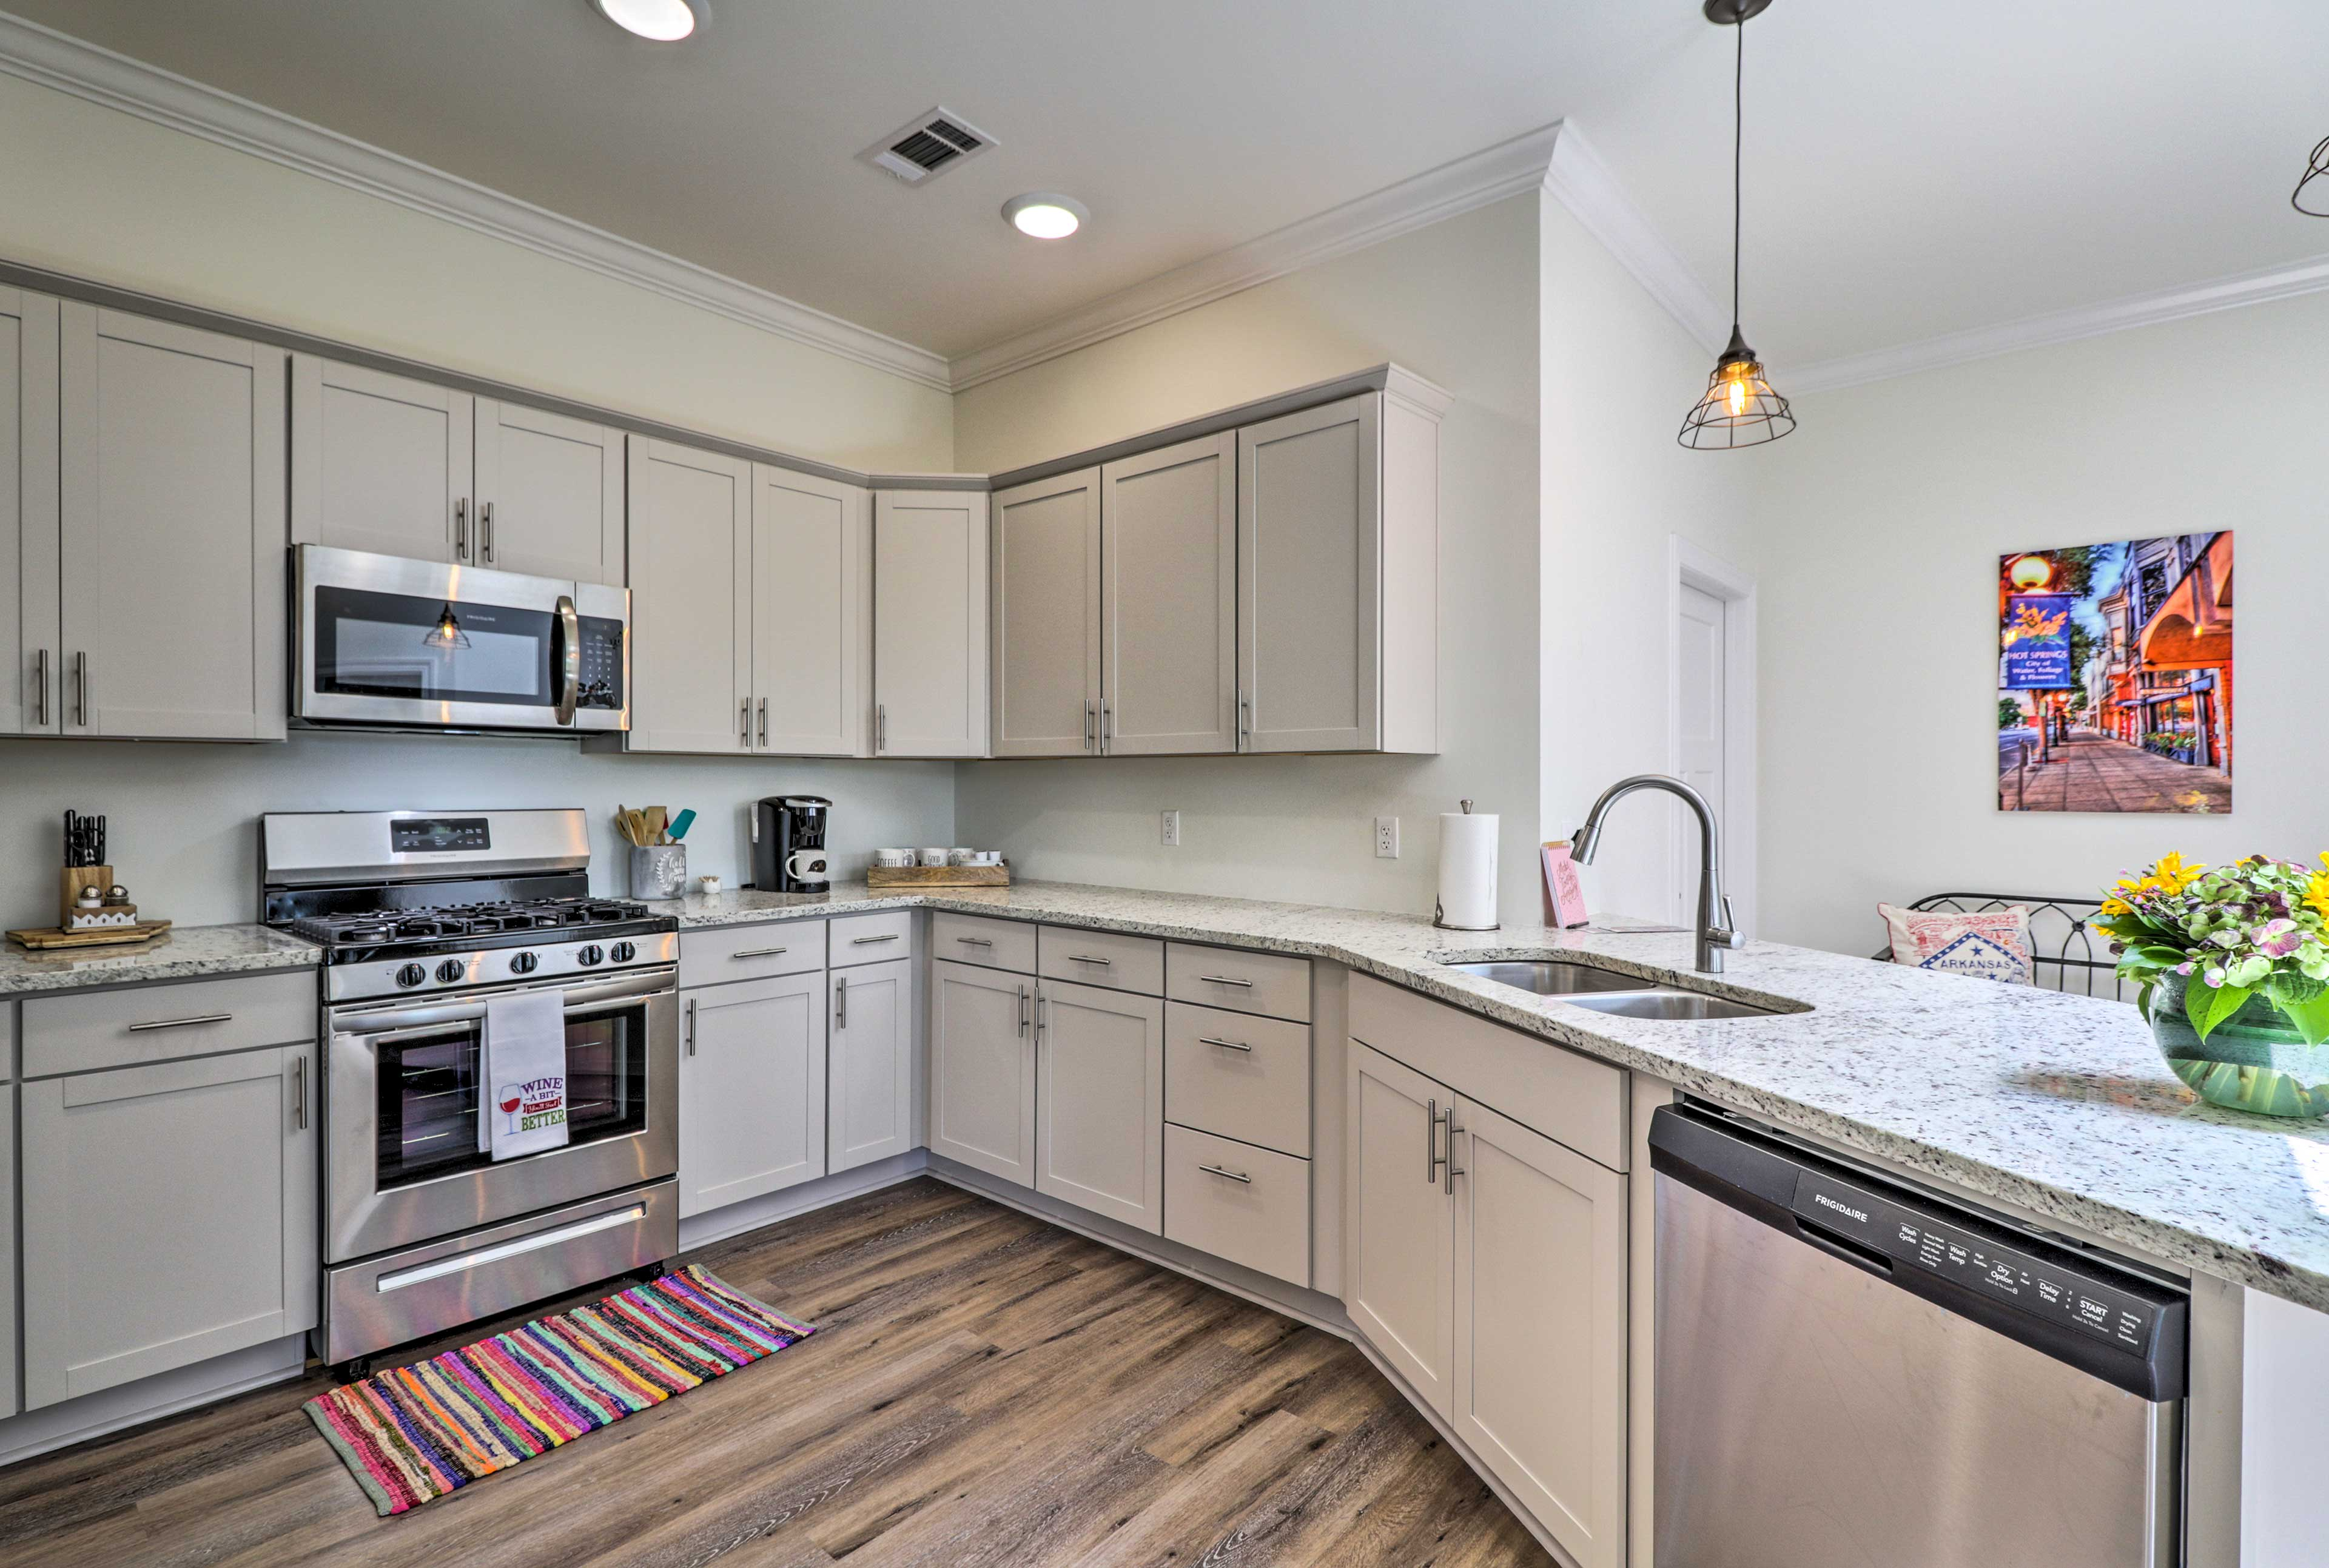 The space comes complete with state-of-the-art appliances.